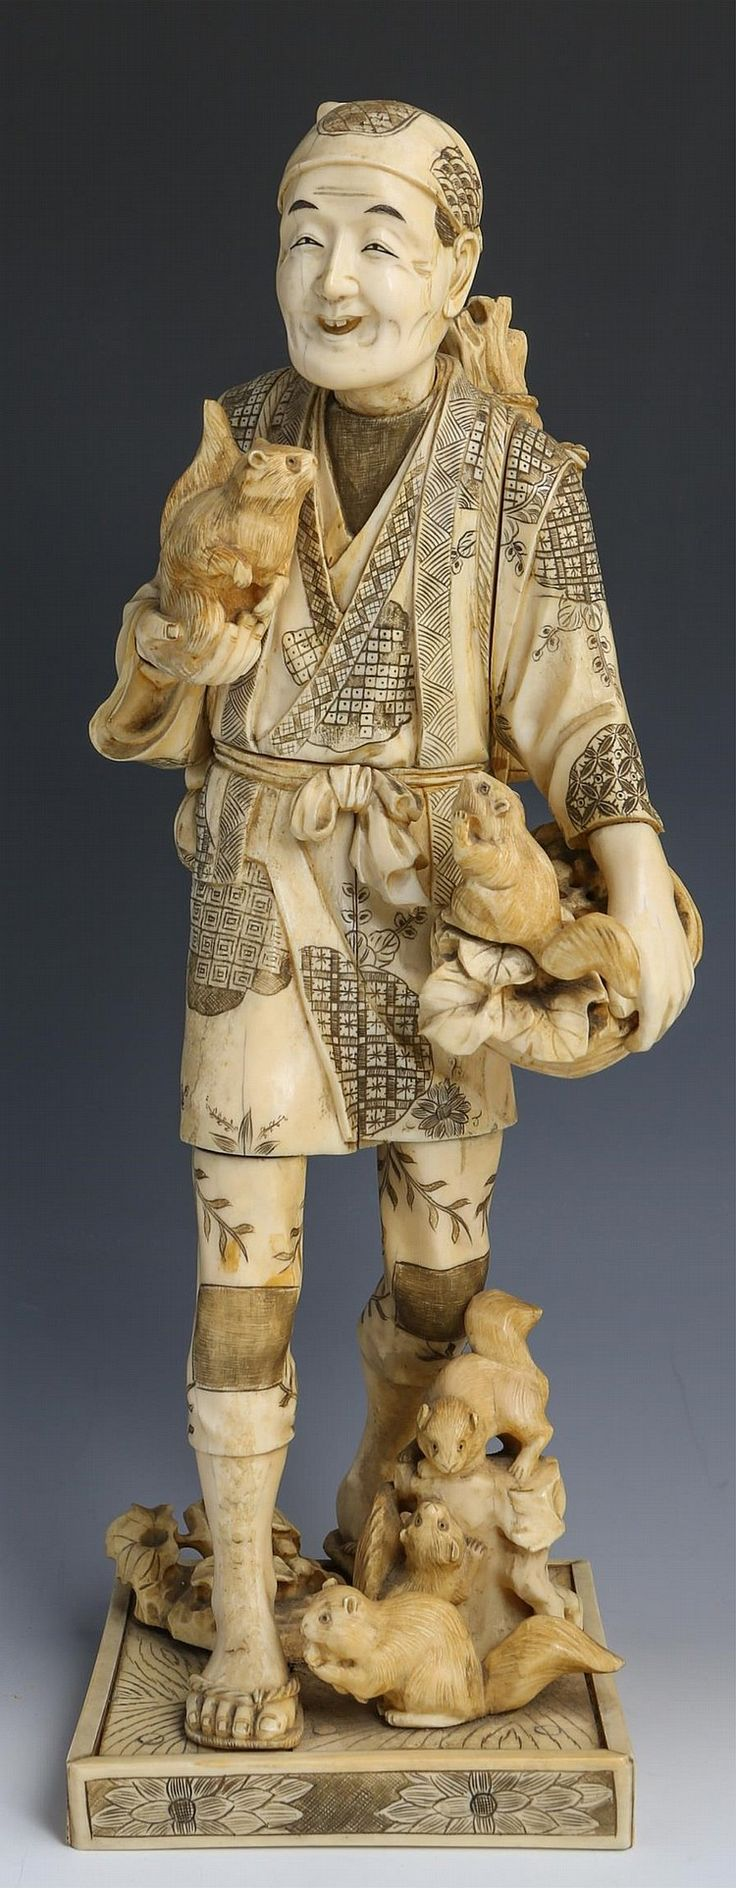 """JAPANESE CARVED IVORY OKIMONO MAN W SQUIRRELS Large Japanese carved ivory okimono, mid to late 19th C., depicting a walking man with a basket of fruiting branches and a dray of squirrels; a basket of branches at his back. Highly detailed with monochrome staining to enhance features. Red cartouche with signature on underside. Fitted to base with peg in foot. Provenance: Private Minnesota estate. Weight: 6.2lbs Size: 15.5 x 5"""""""